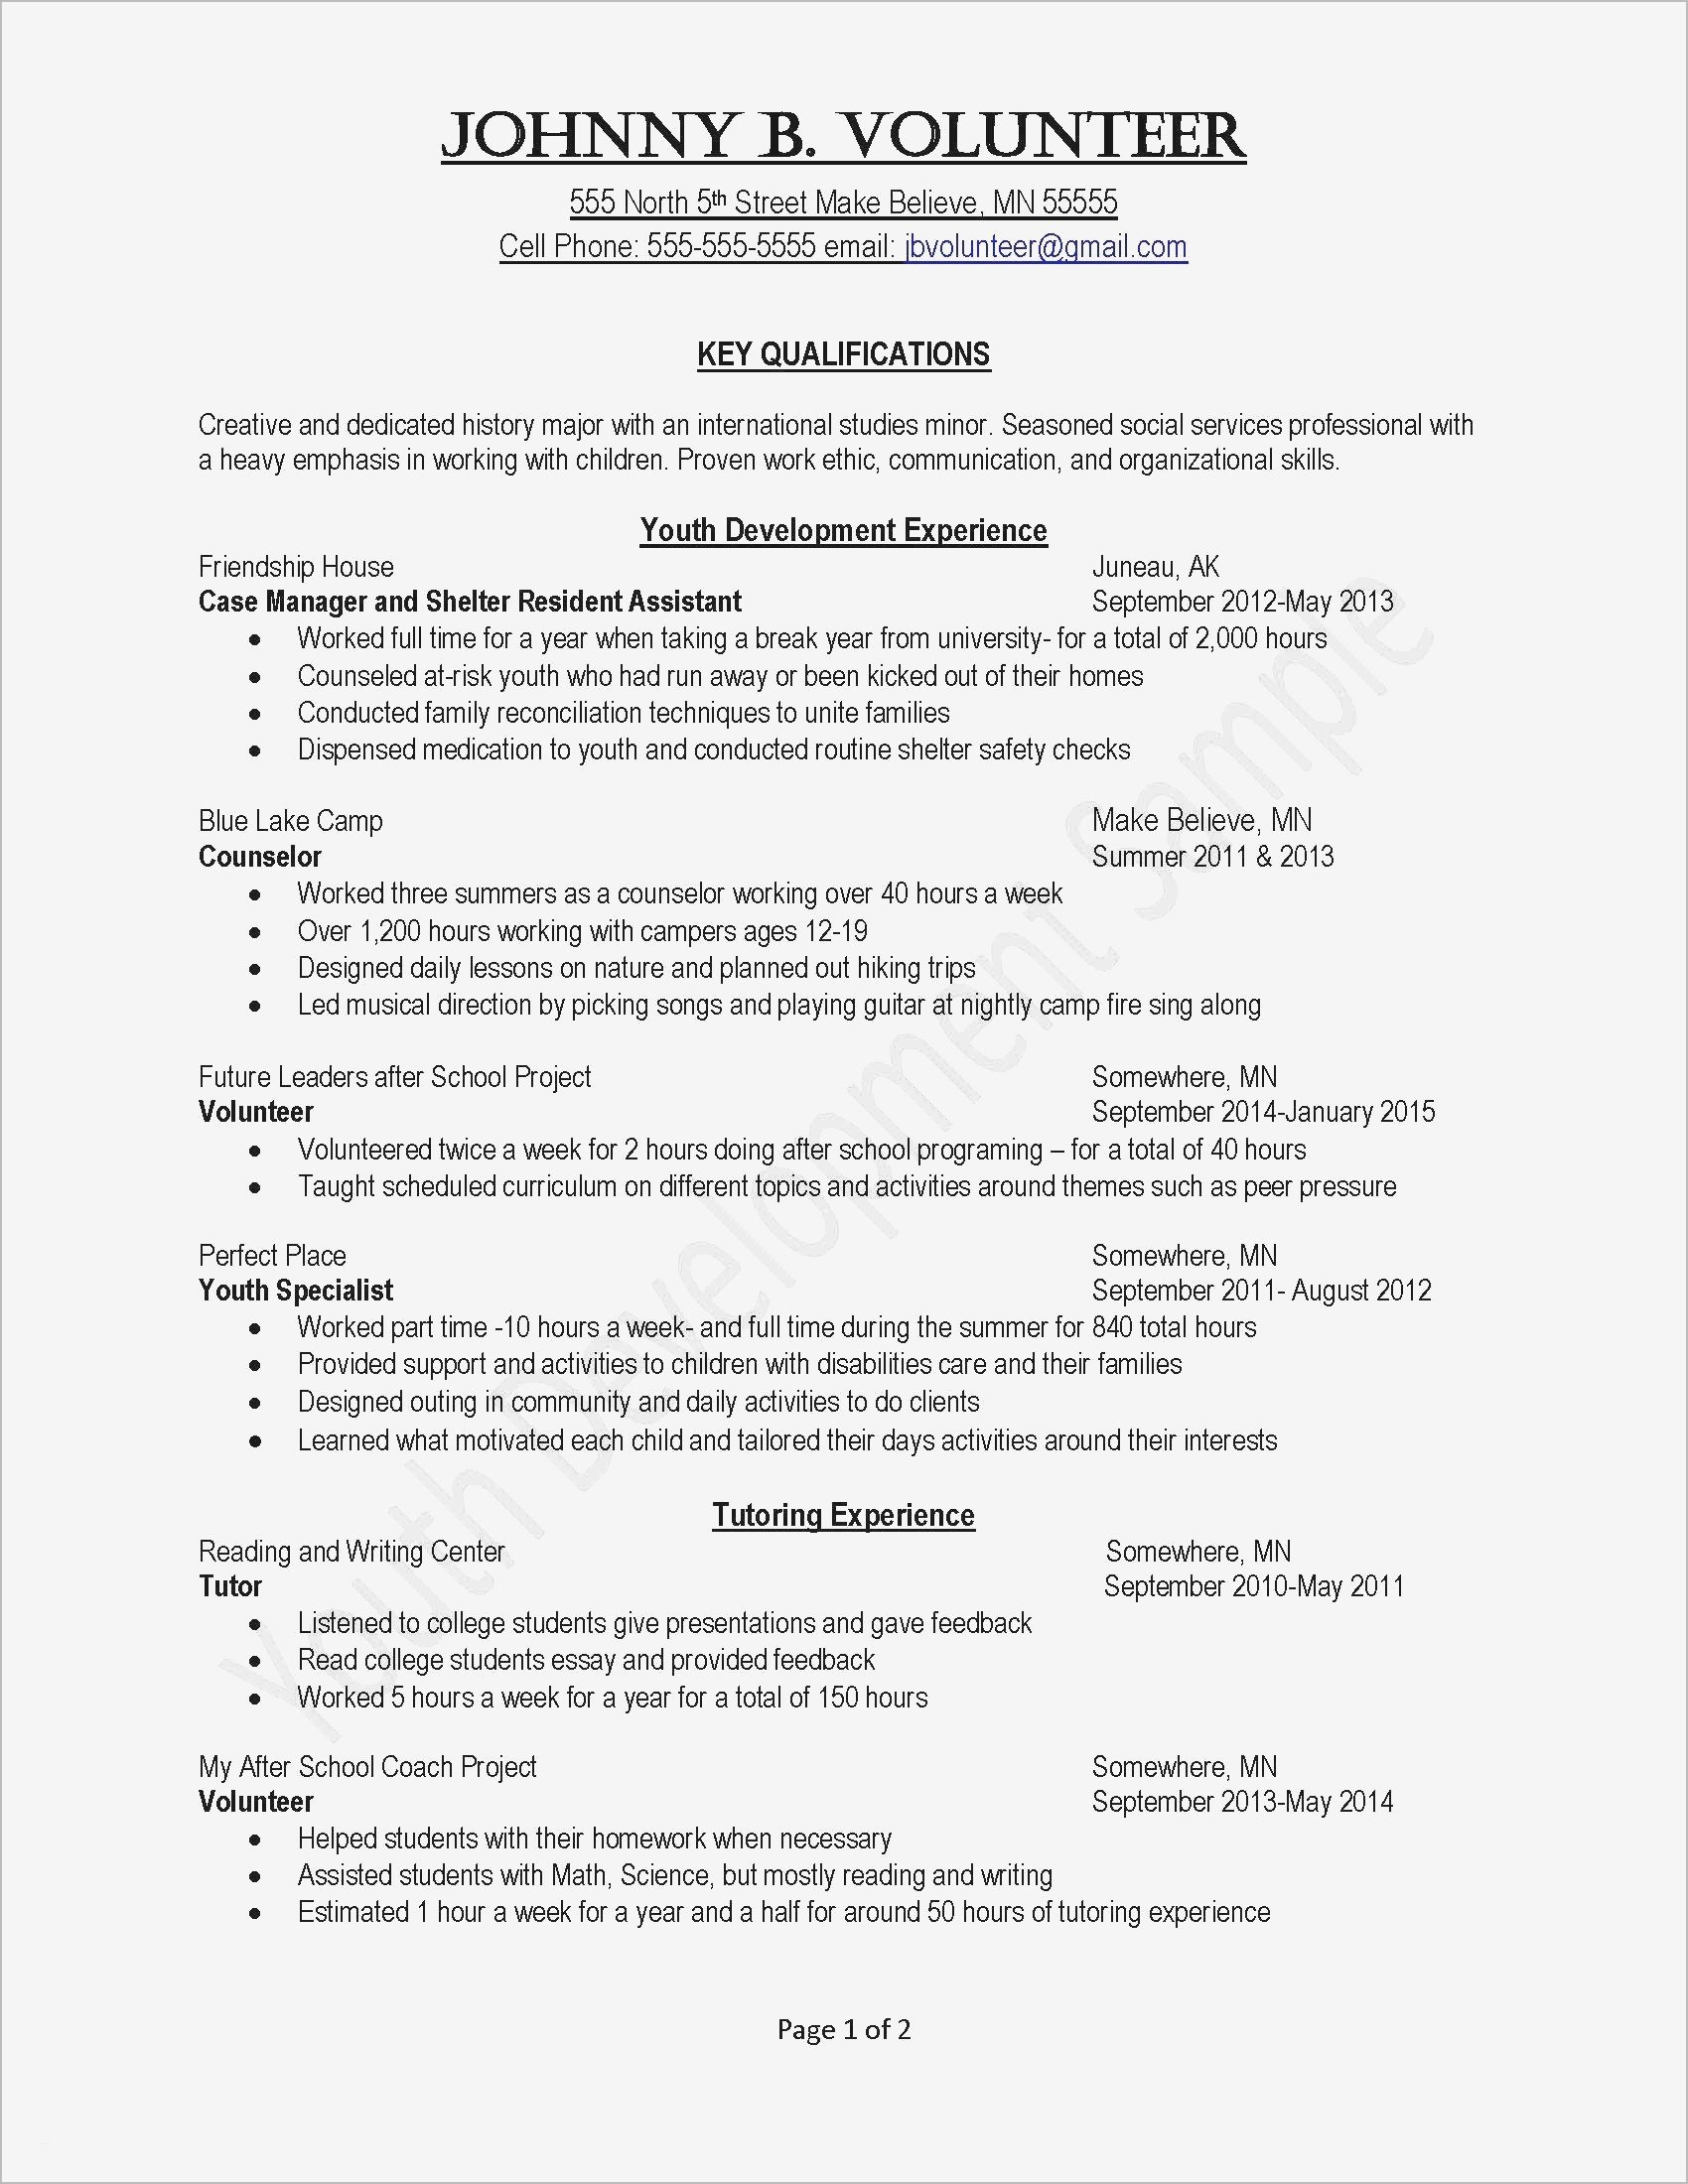 free job offer letter template example-Job fer Letter Template Us Copy Od Consultant Cover Letter Fungram New 21 Resume Templates for 3-s